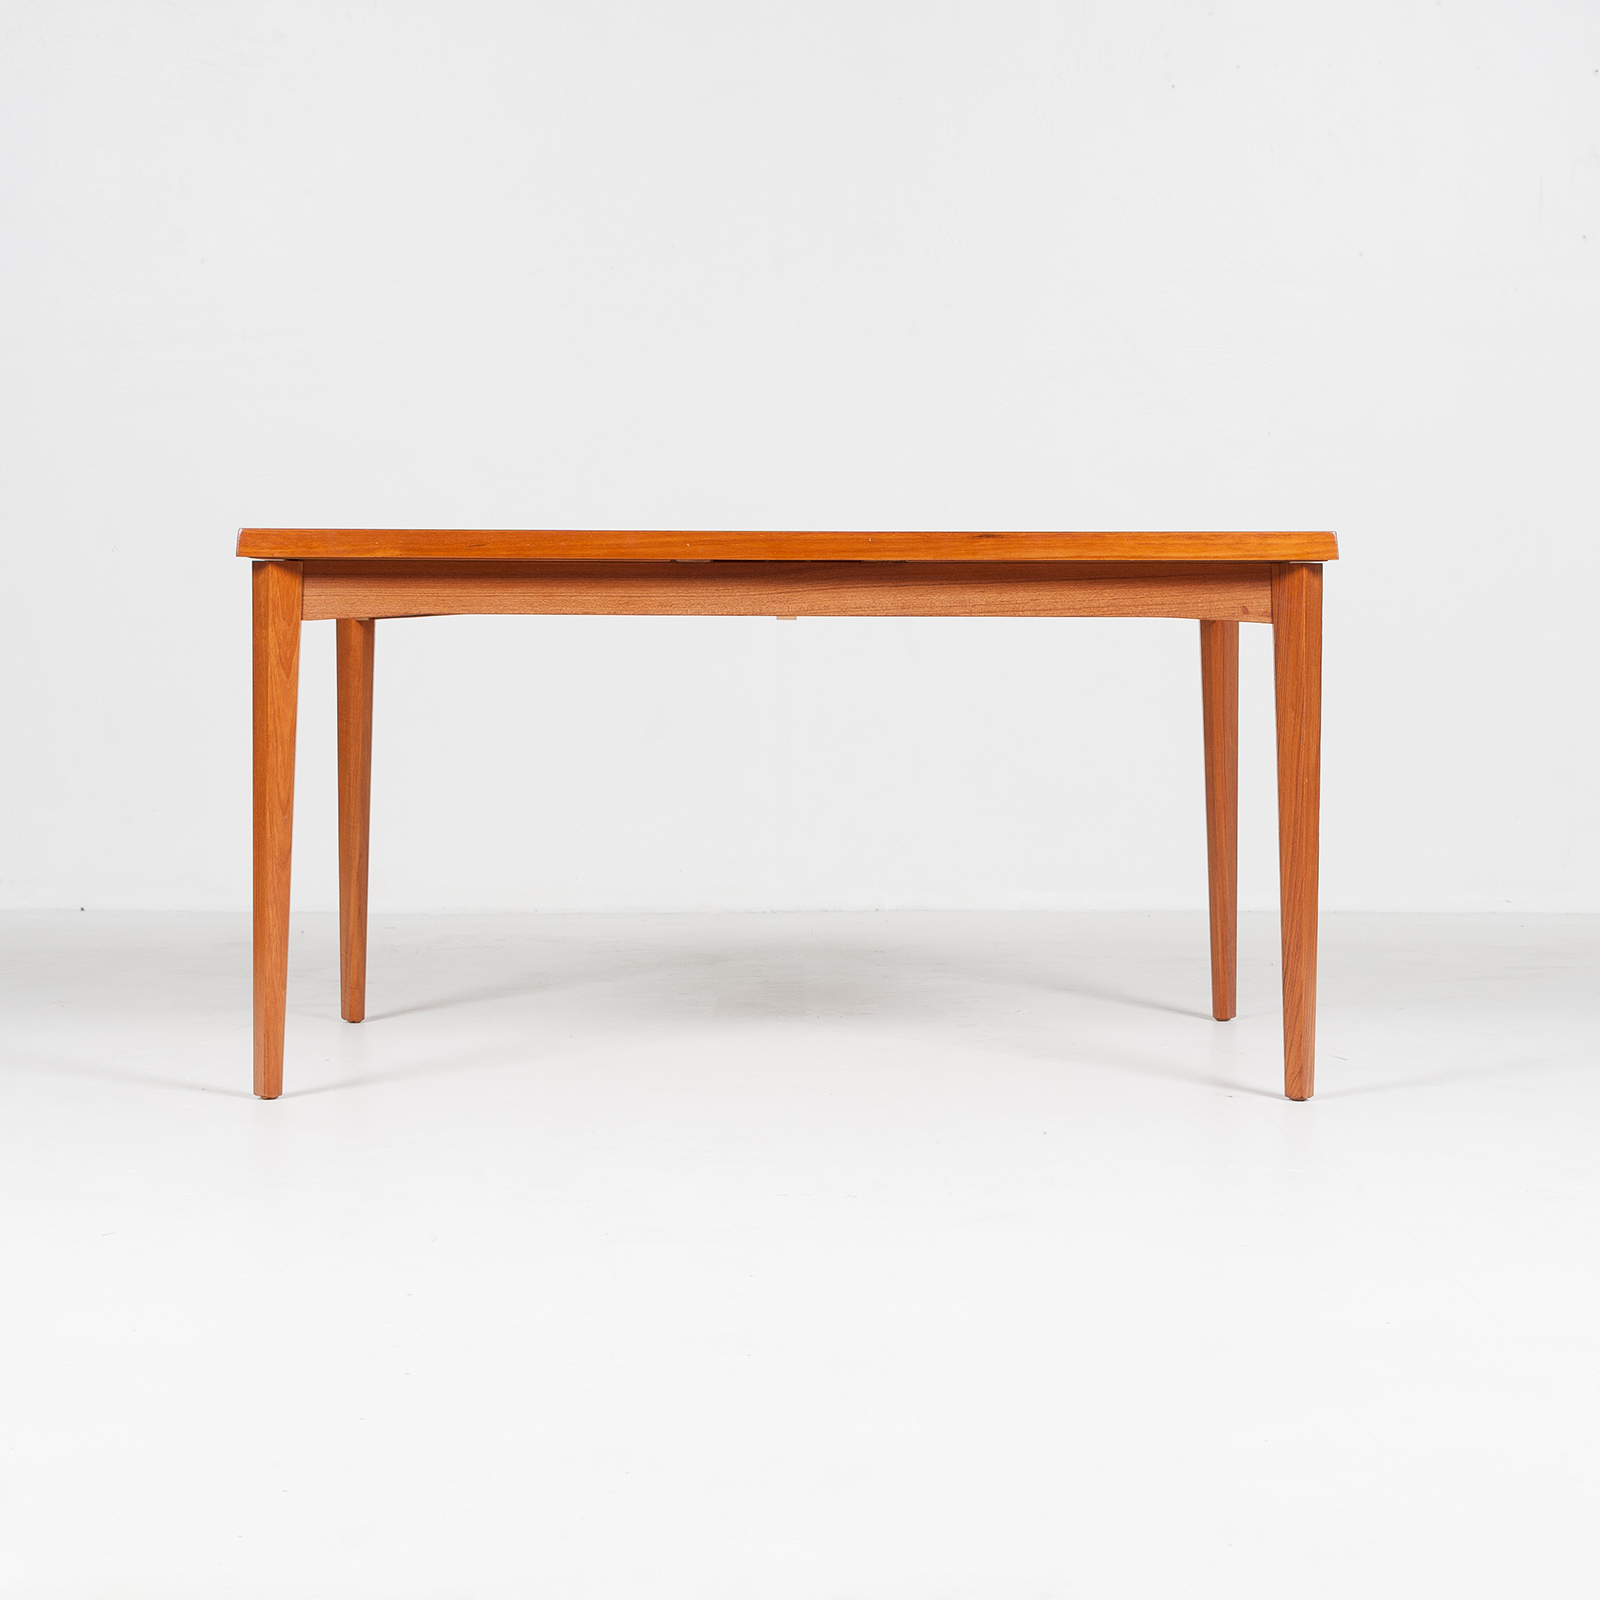 Dining Table In Teak With Concealed Top, 1960s, Denmark17